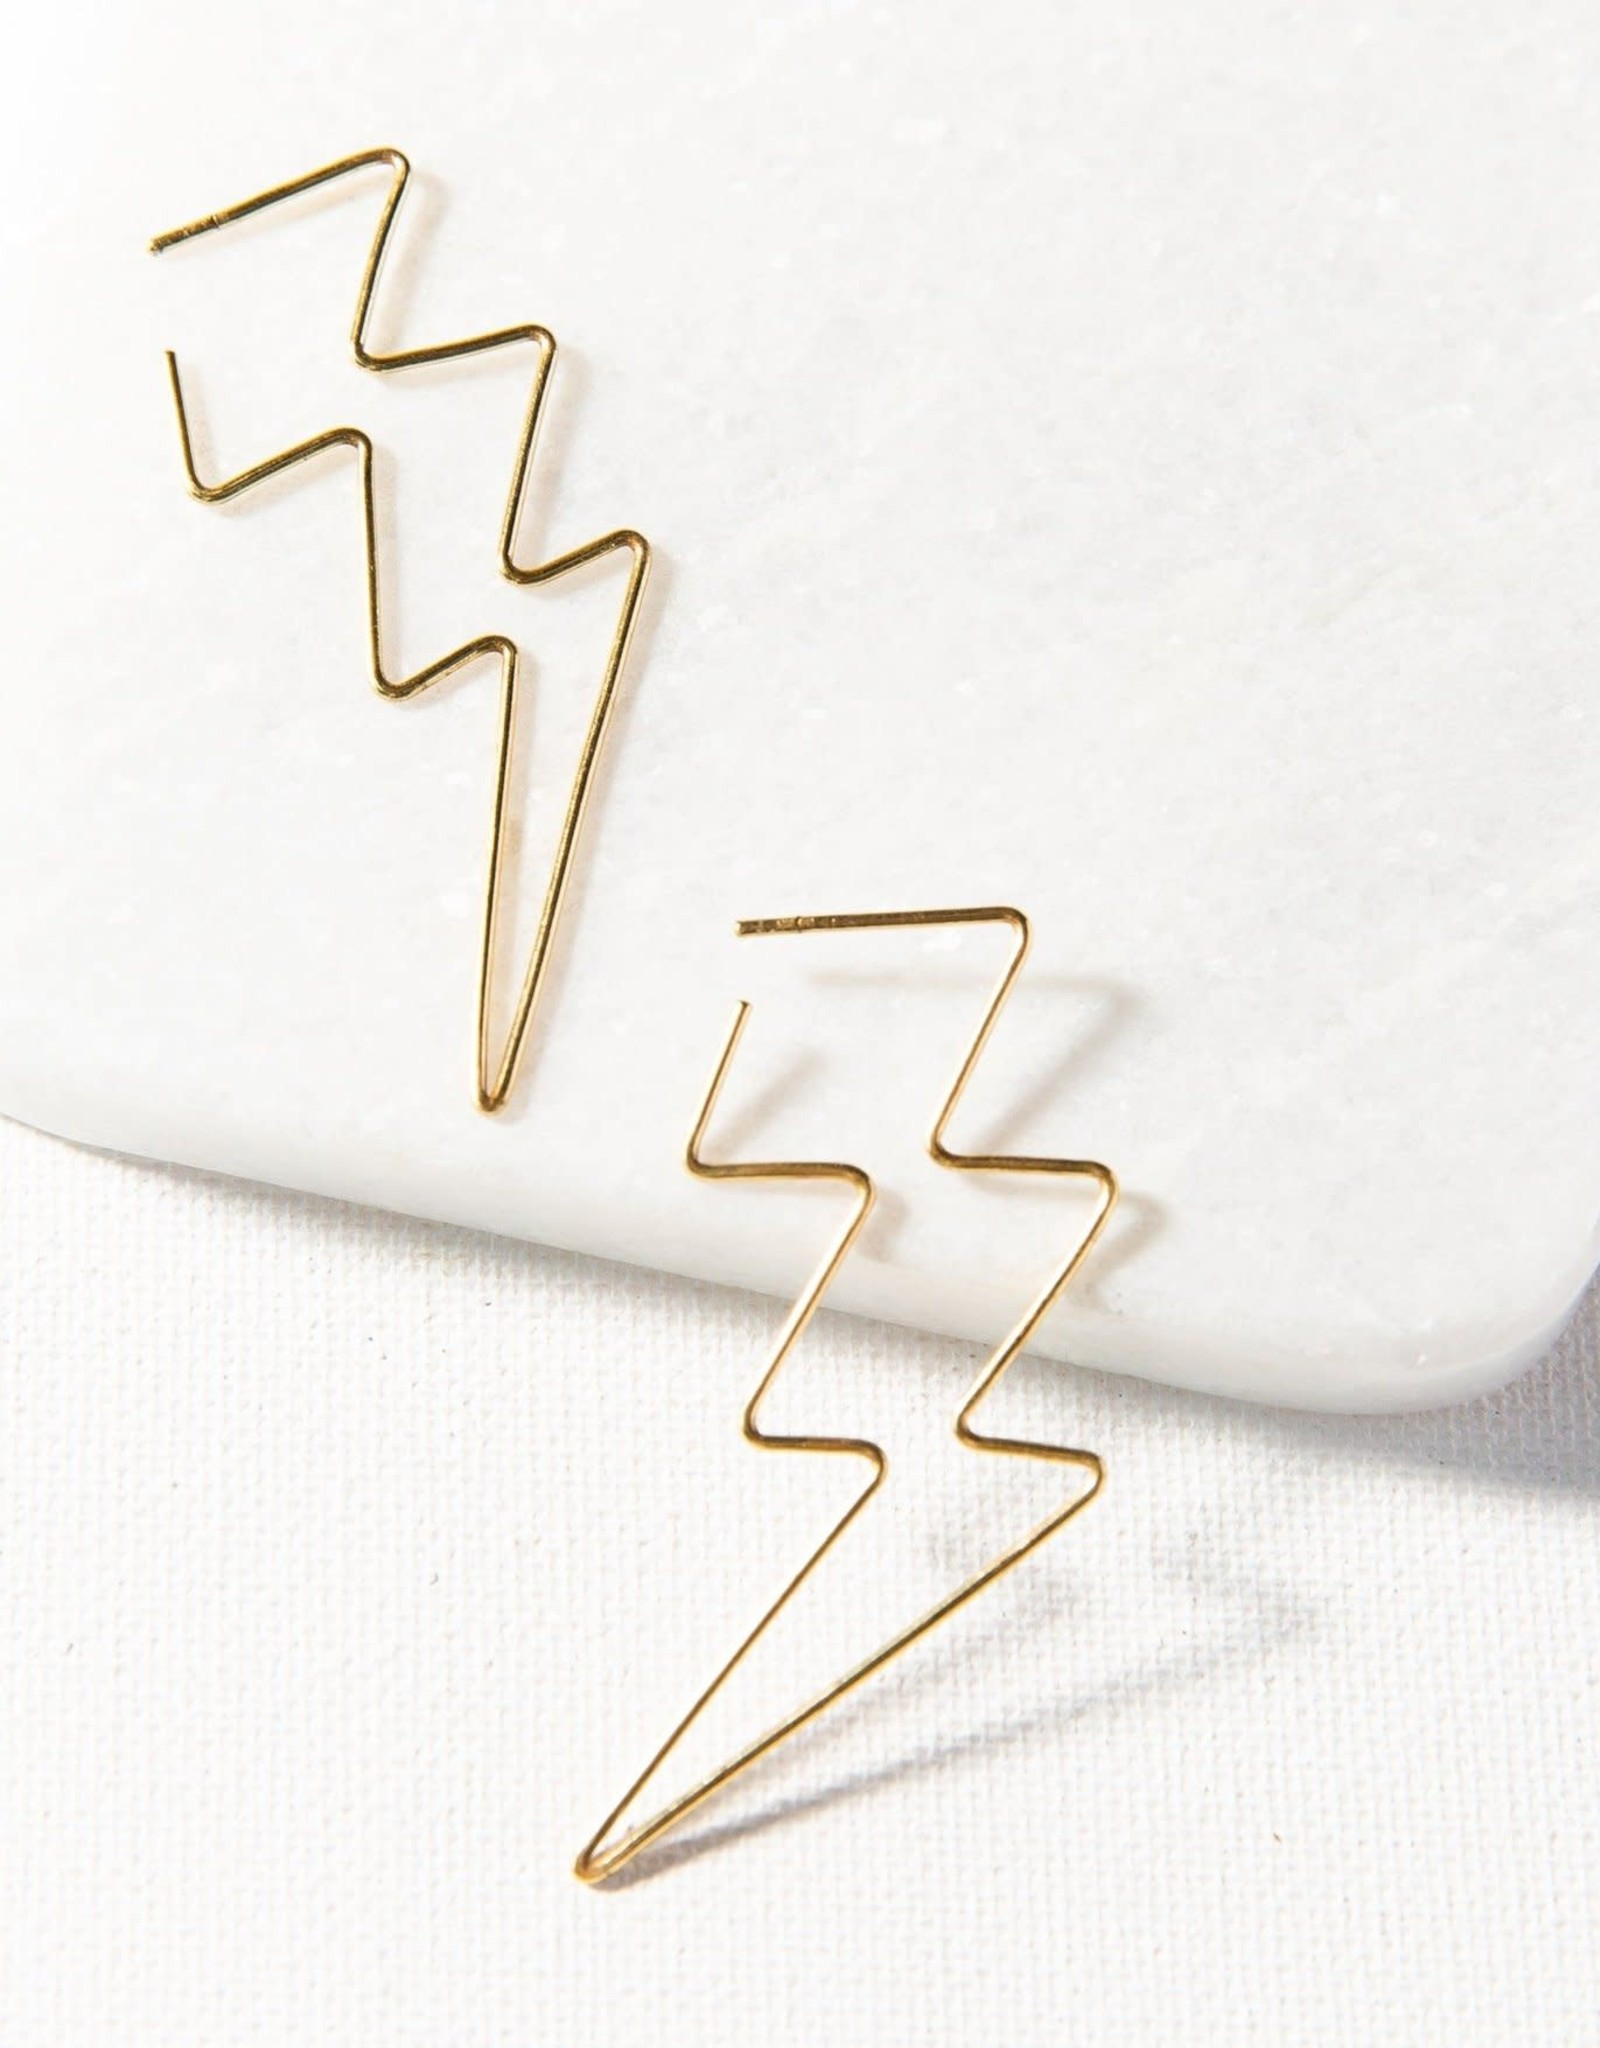 Ink + Alloy Ink + Alloy | lightning bolt wire earring